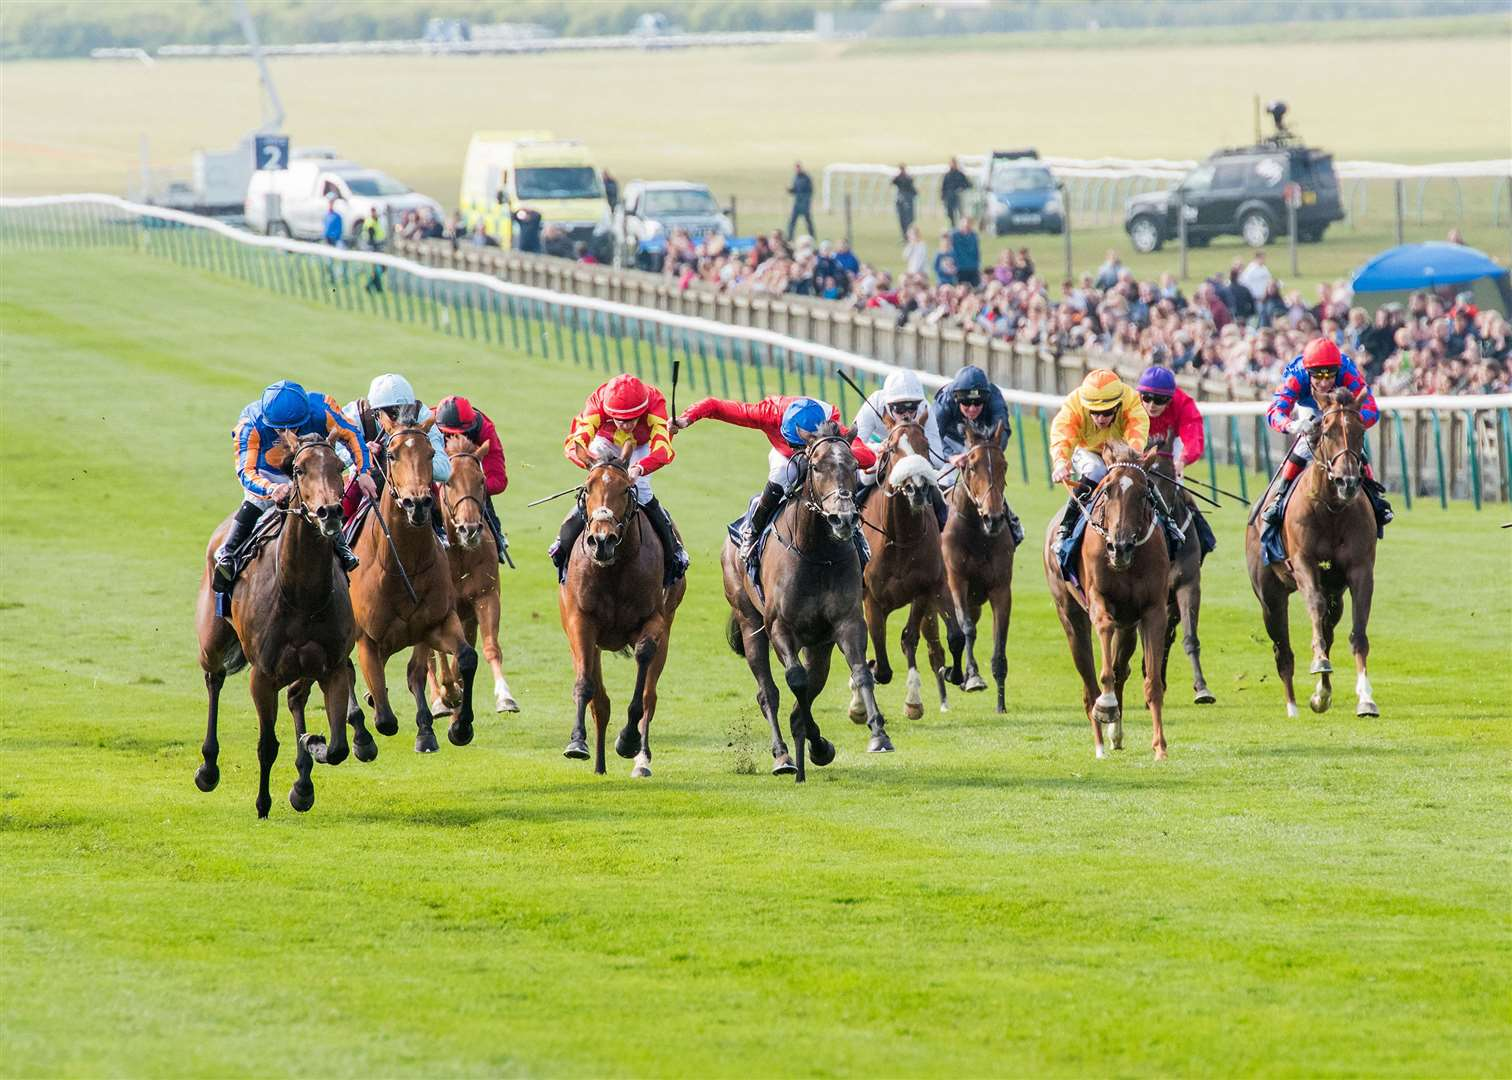 1000 Guineas Day At Newmarket Rowley Mile Qipco 1000 Guineas Stakes (Group 1) (British Champions Series) (Fillies)..6. Hermosa..Winning jockey: Wayne Lordan.Winning trainer: A P O'Brien Picture by Mark Westley. (9719006)